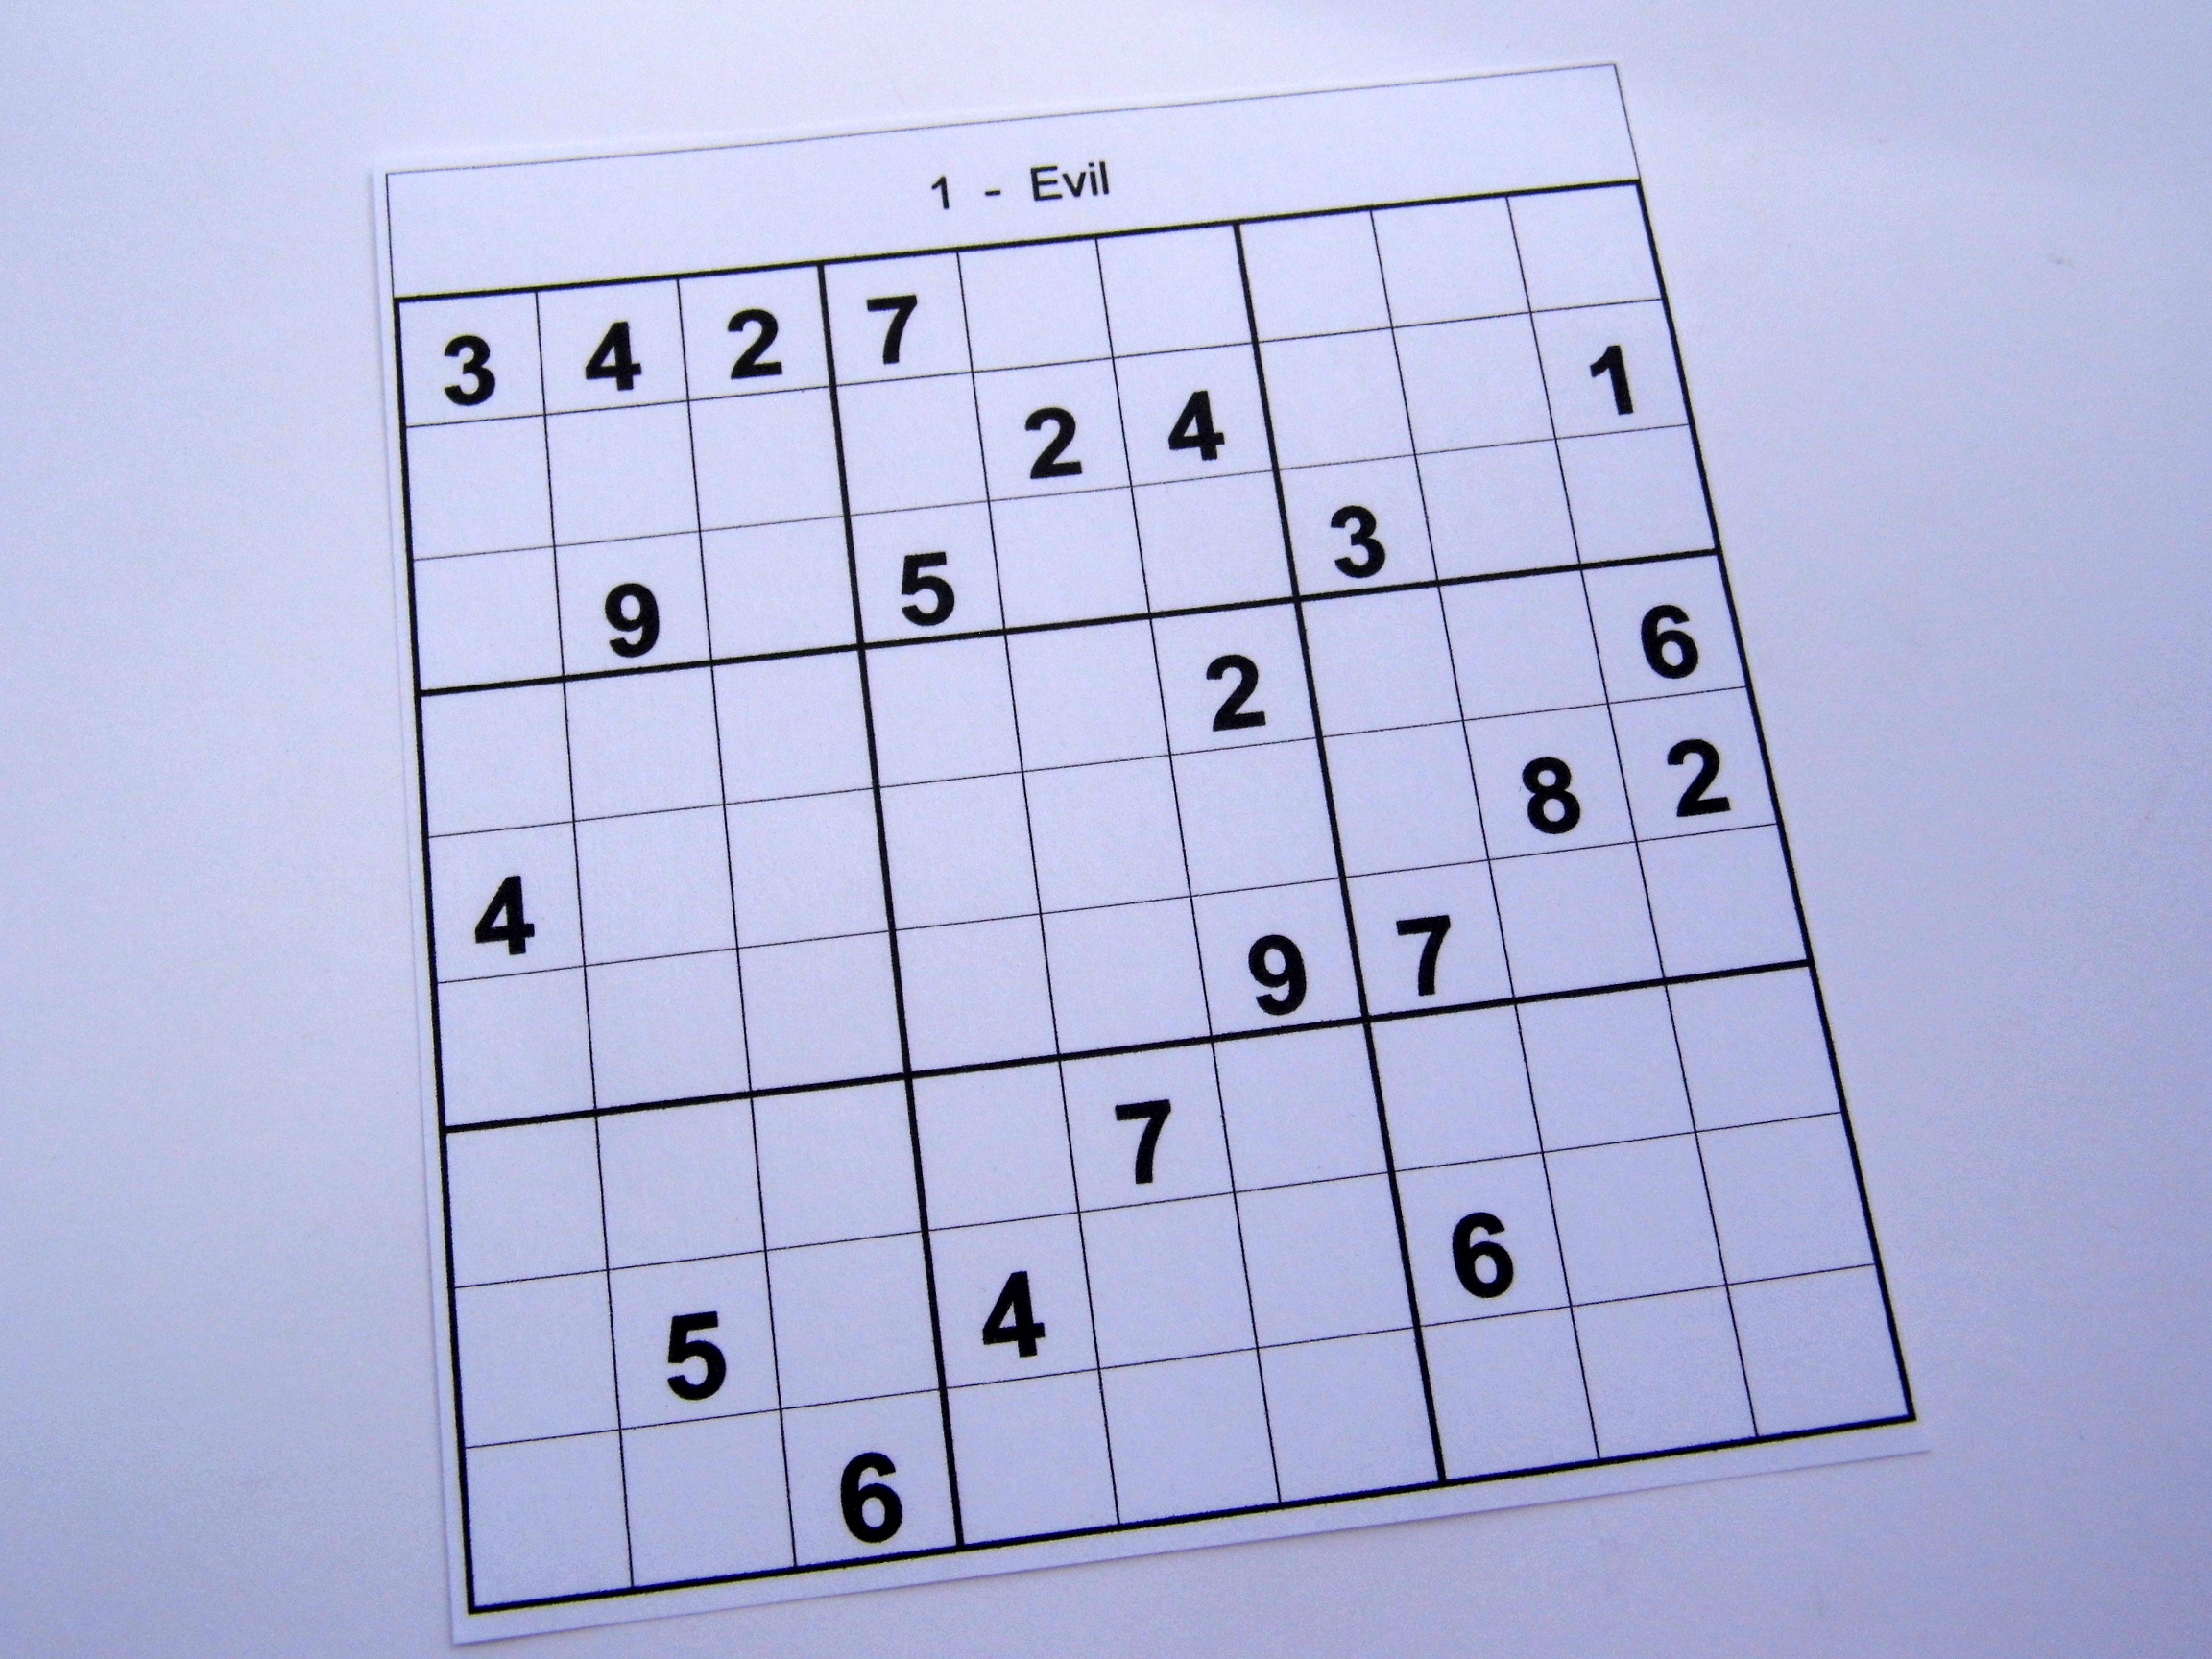 Hard Printable Sudoku Puzzles 2 Per Page – Book 1 – Free Sudoku Puzzles - Printable Sudoku Puzzles Very Hard